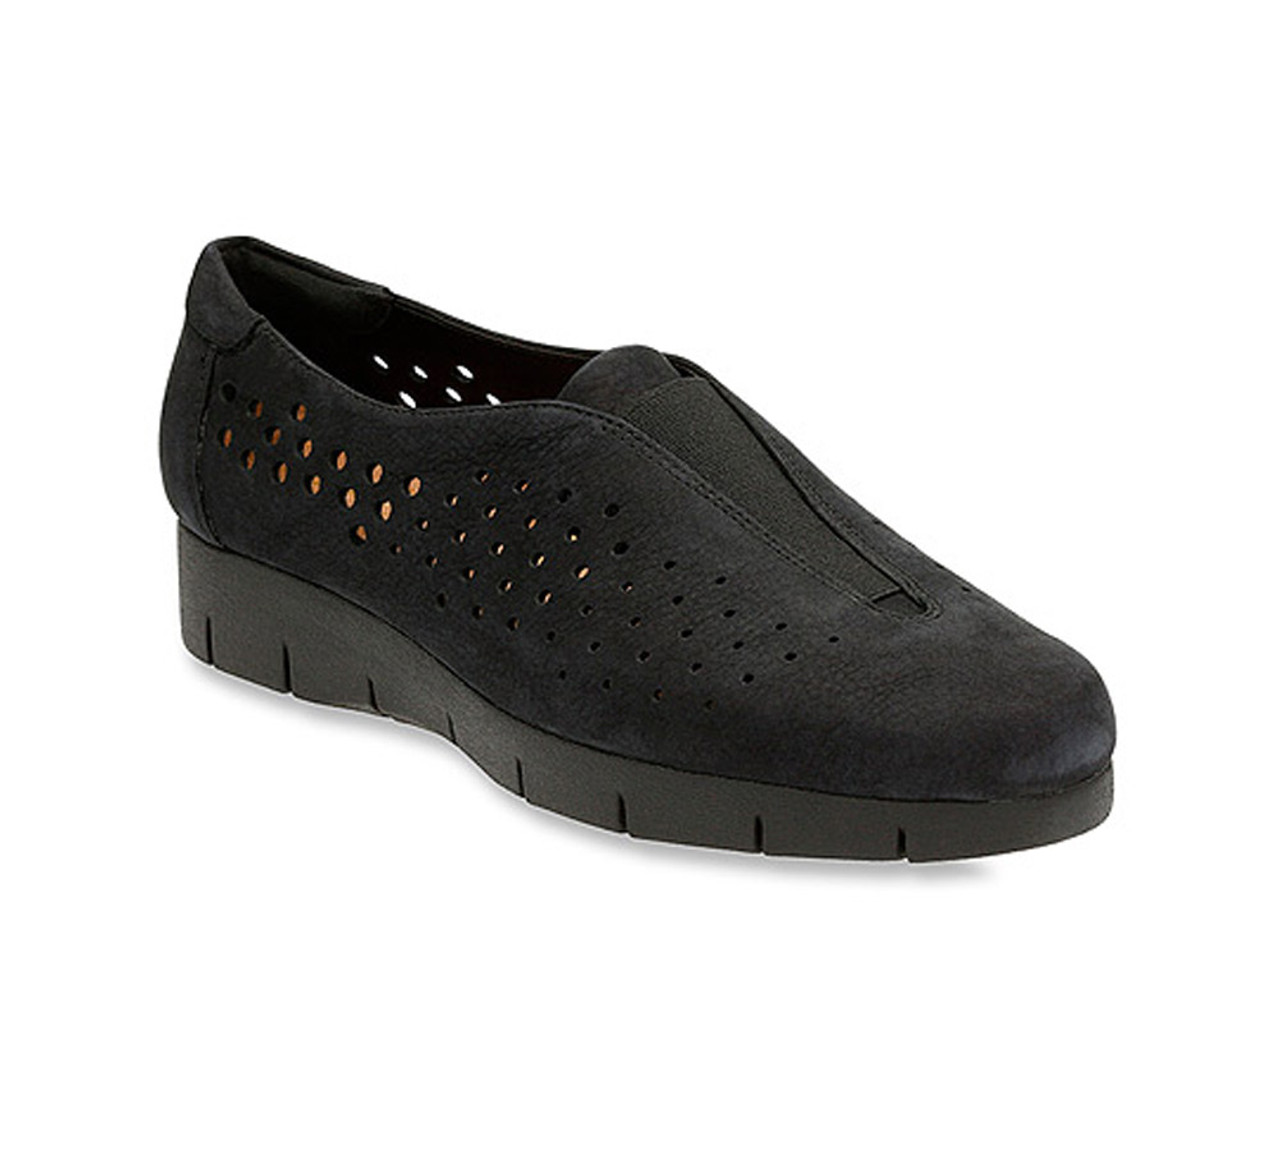 Clarks Daelyn Summit Black Nubuck Women